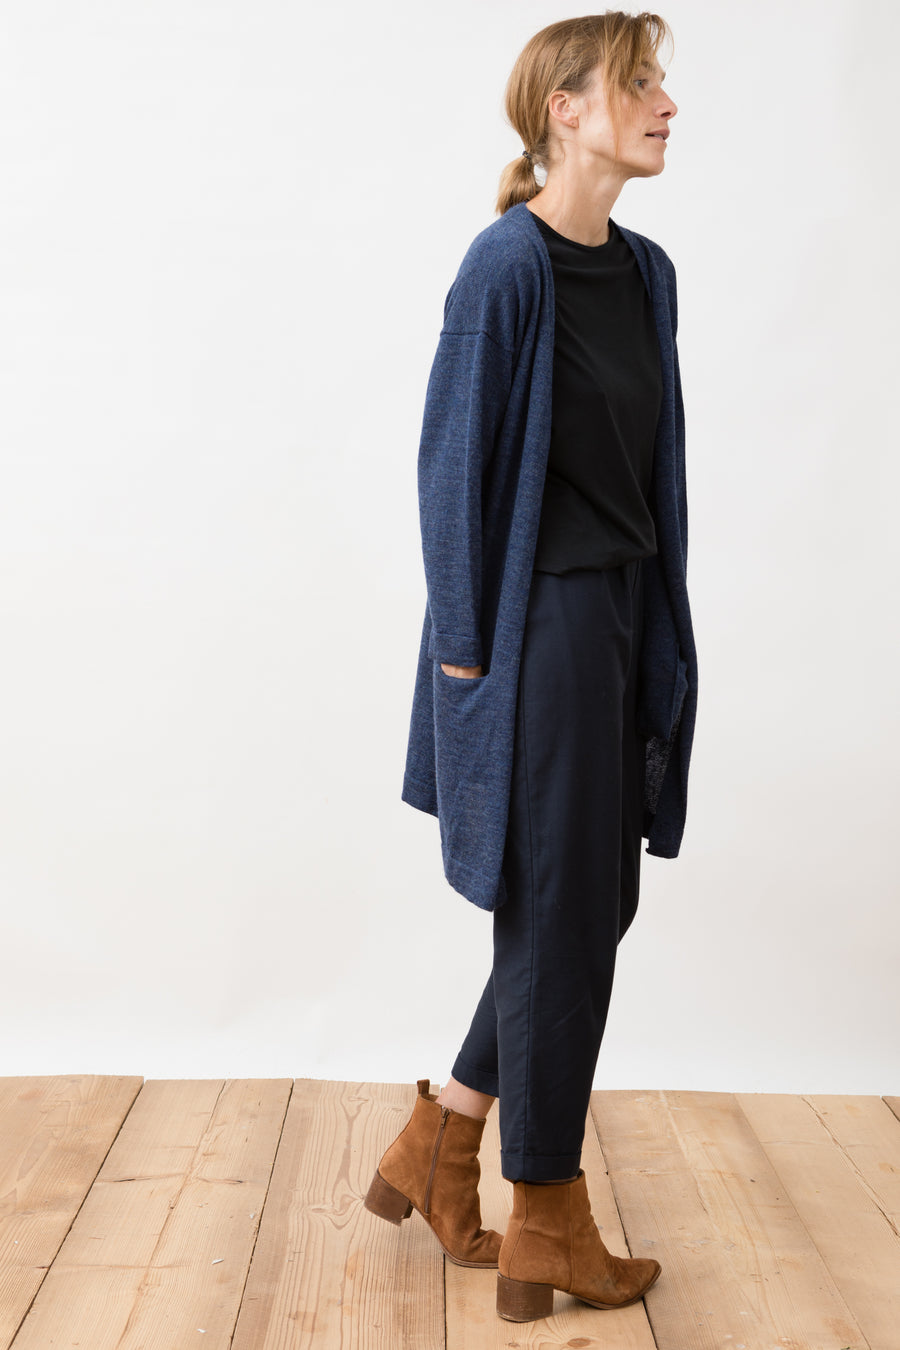 Yuina Knit Cardigan Grey-Blue